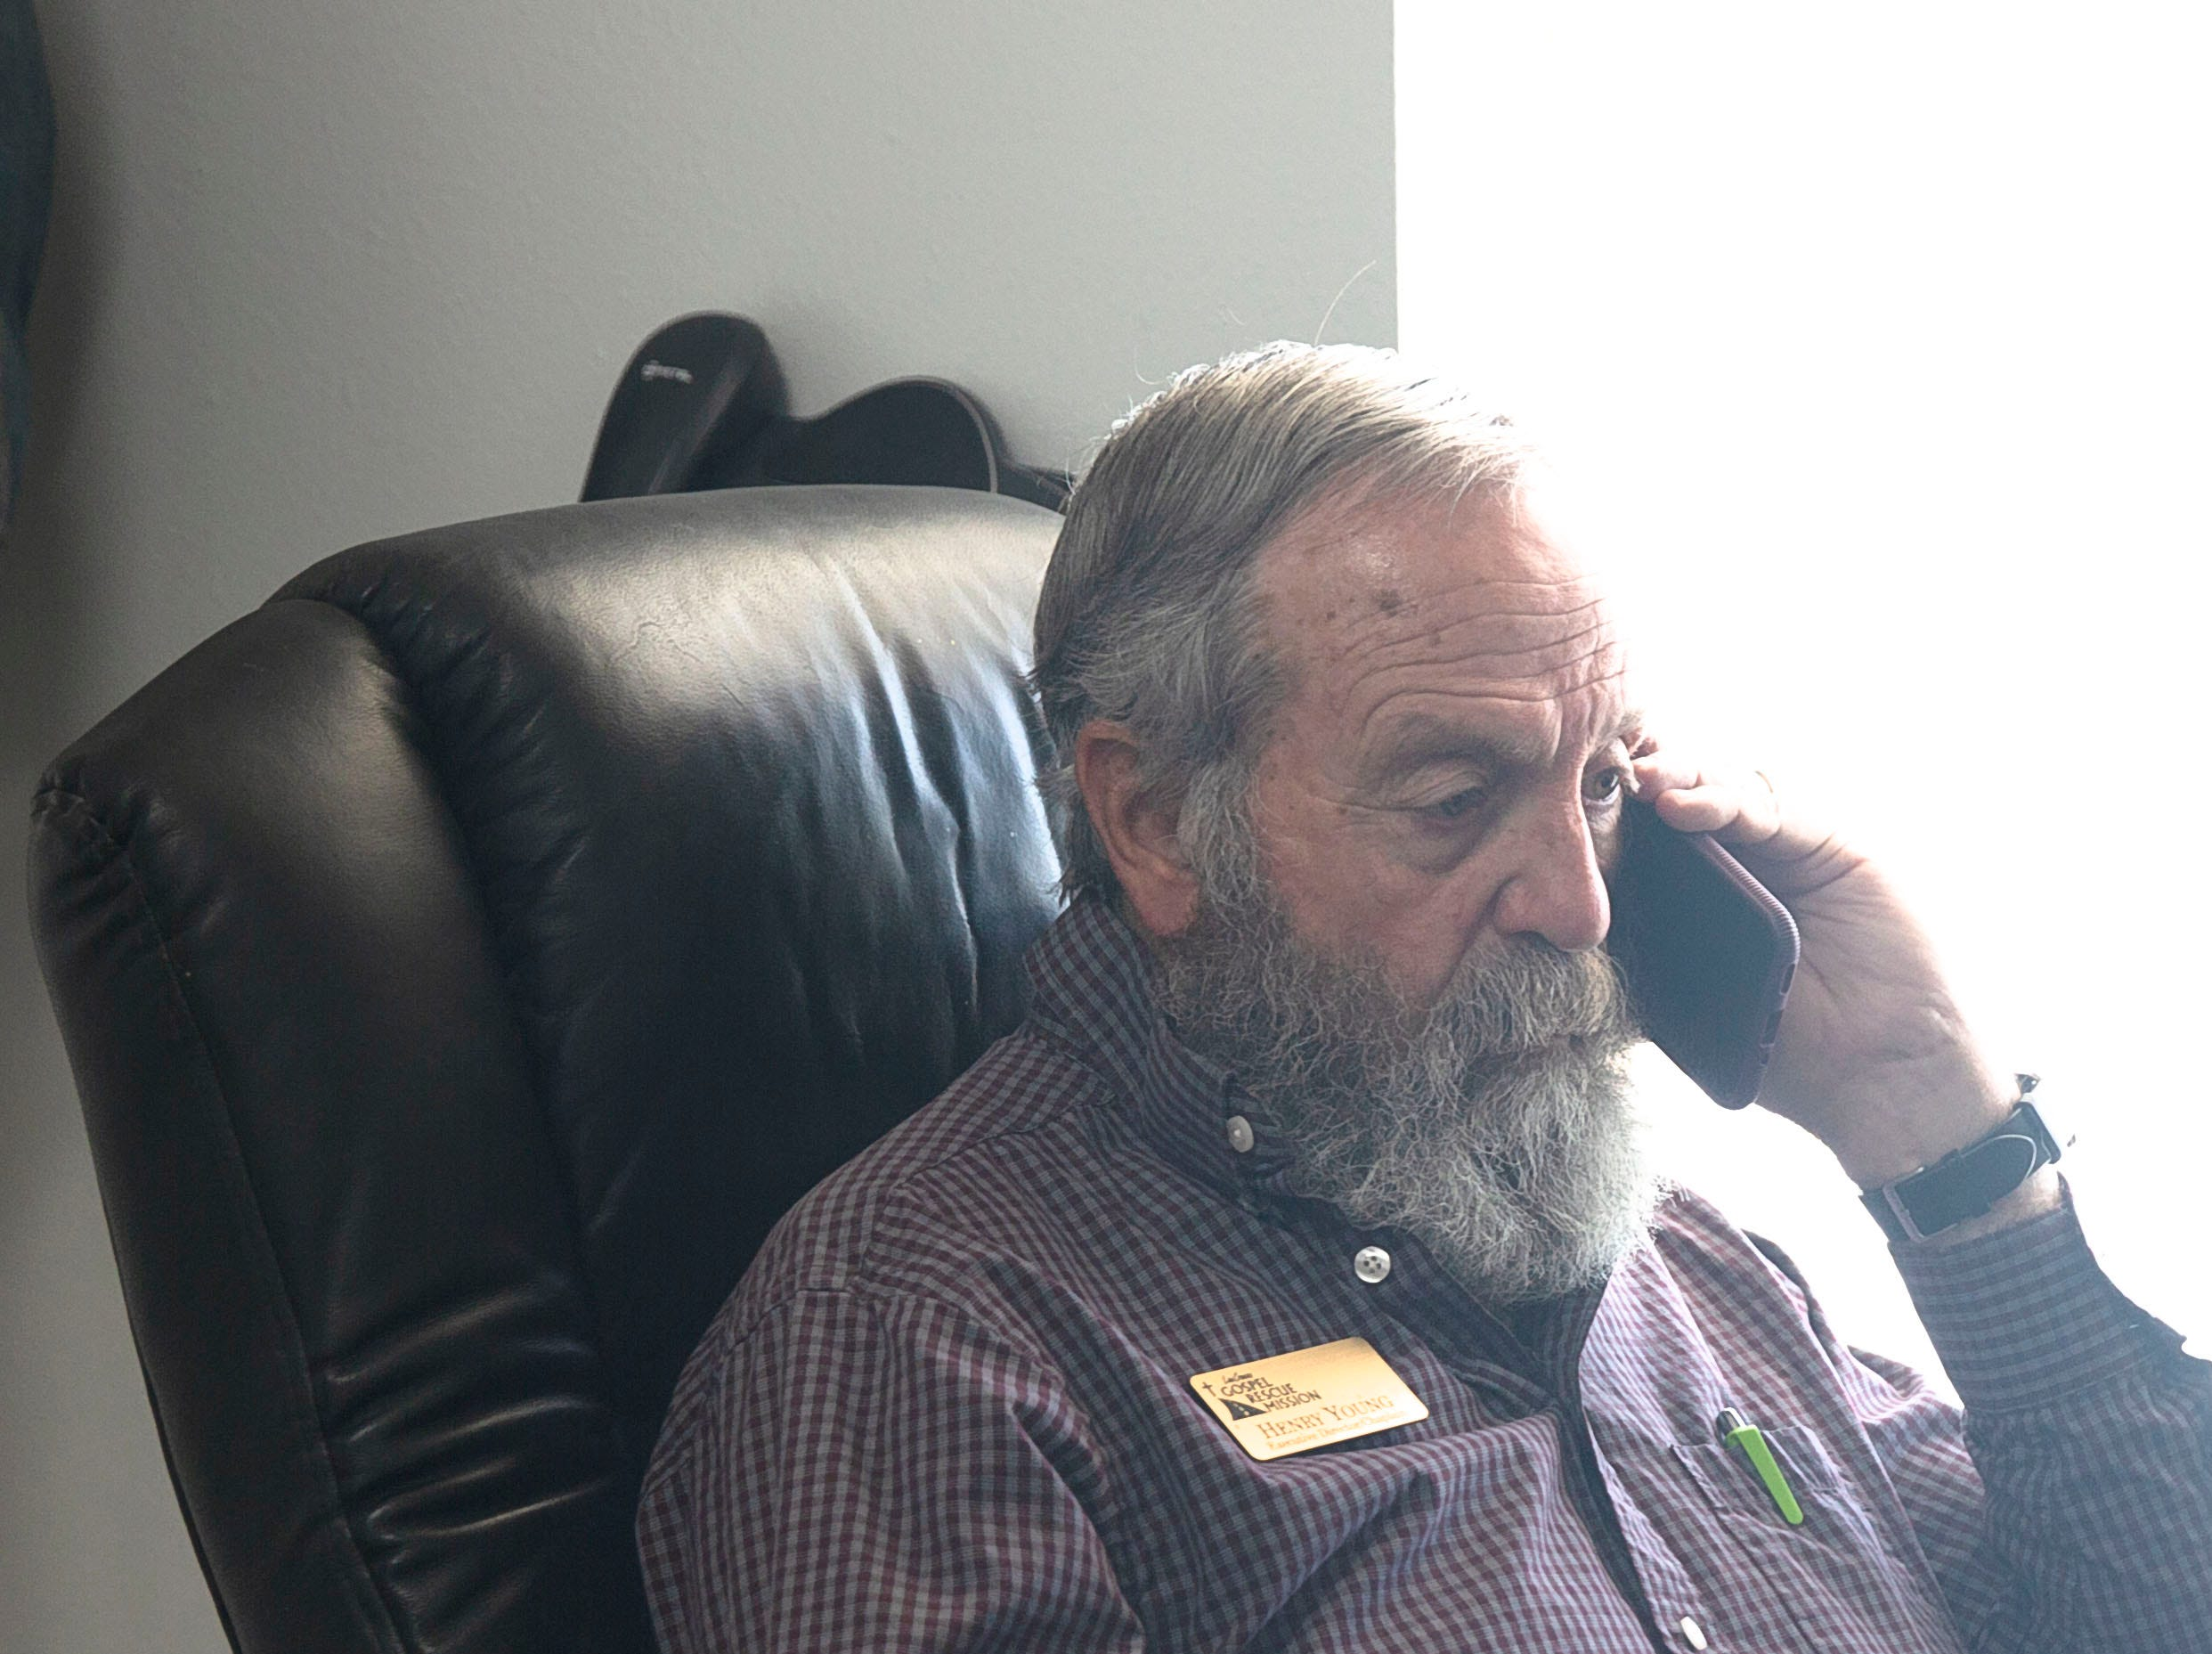 Henry Young, executive director and chaplain at the Las Cruces Gospel Rescue Mission, calls for medical help Monday April 15, 2019.